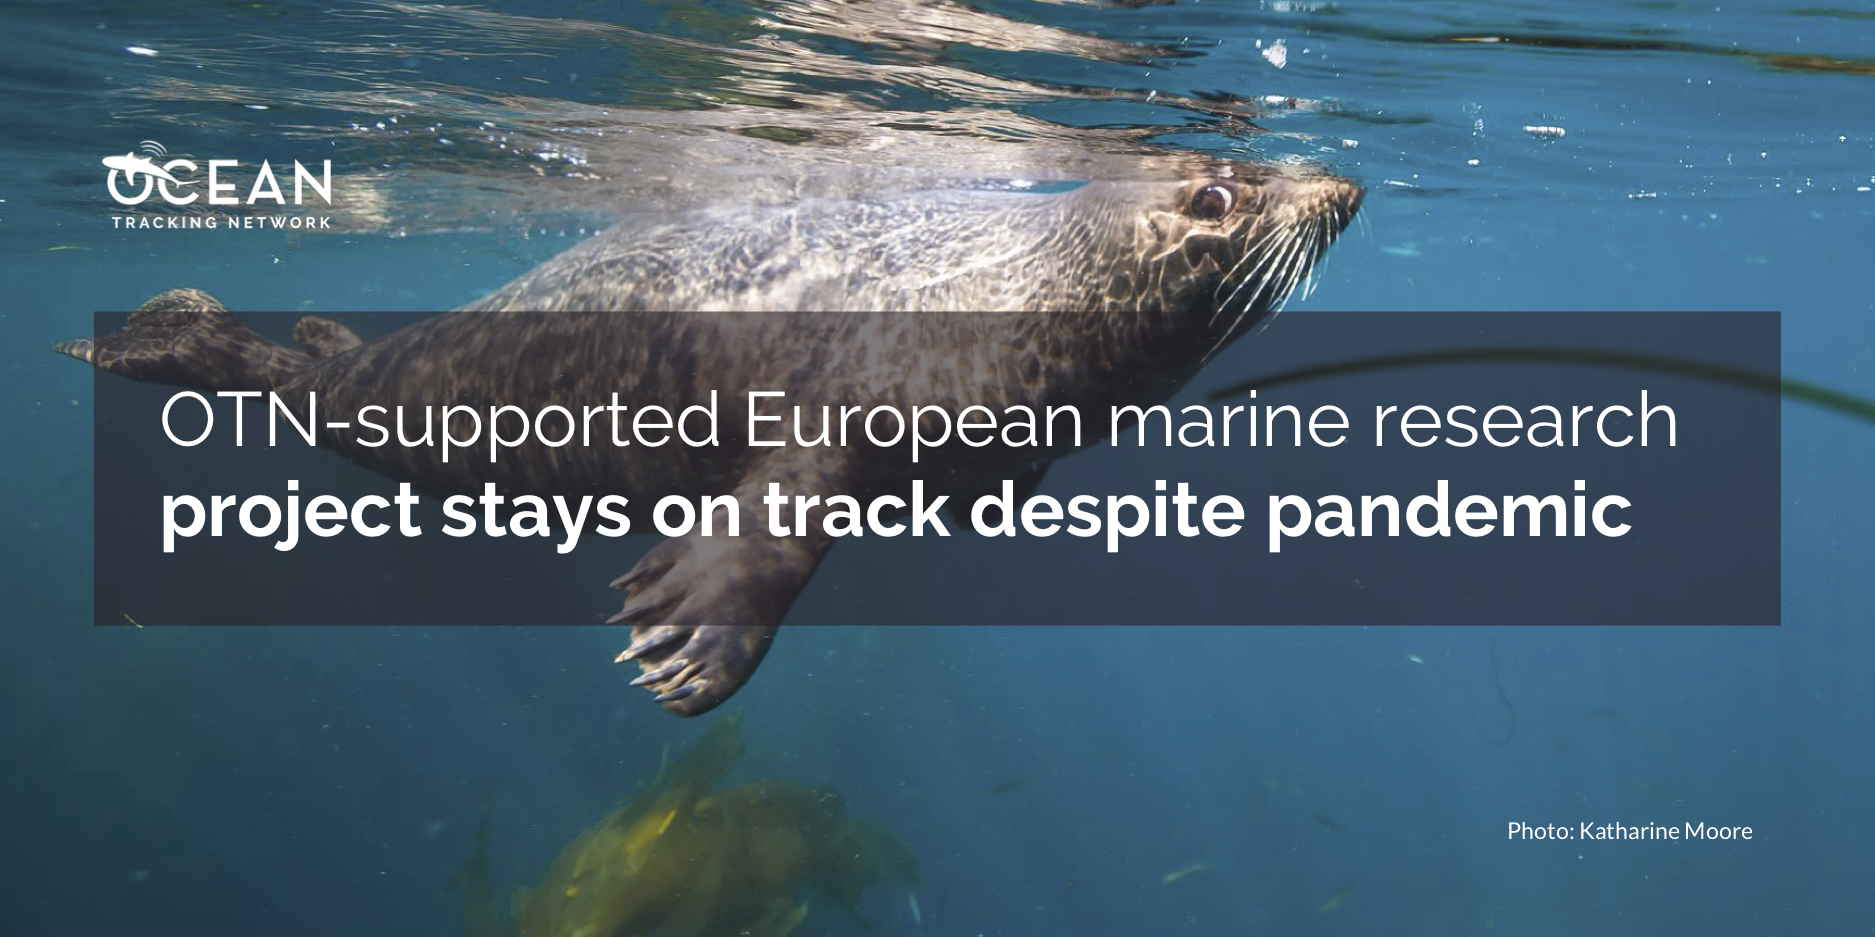 OTN-supported European marine research project stays on track despite pandemic